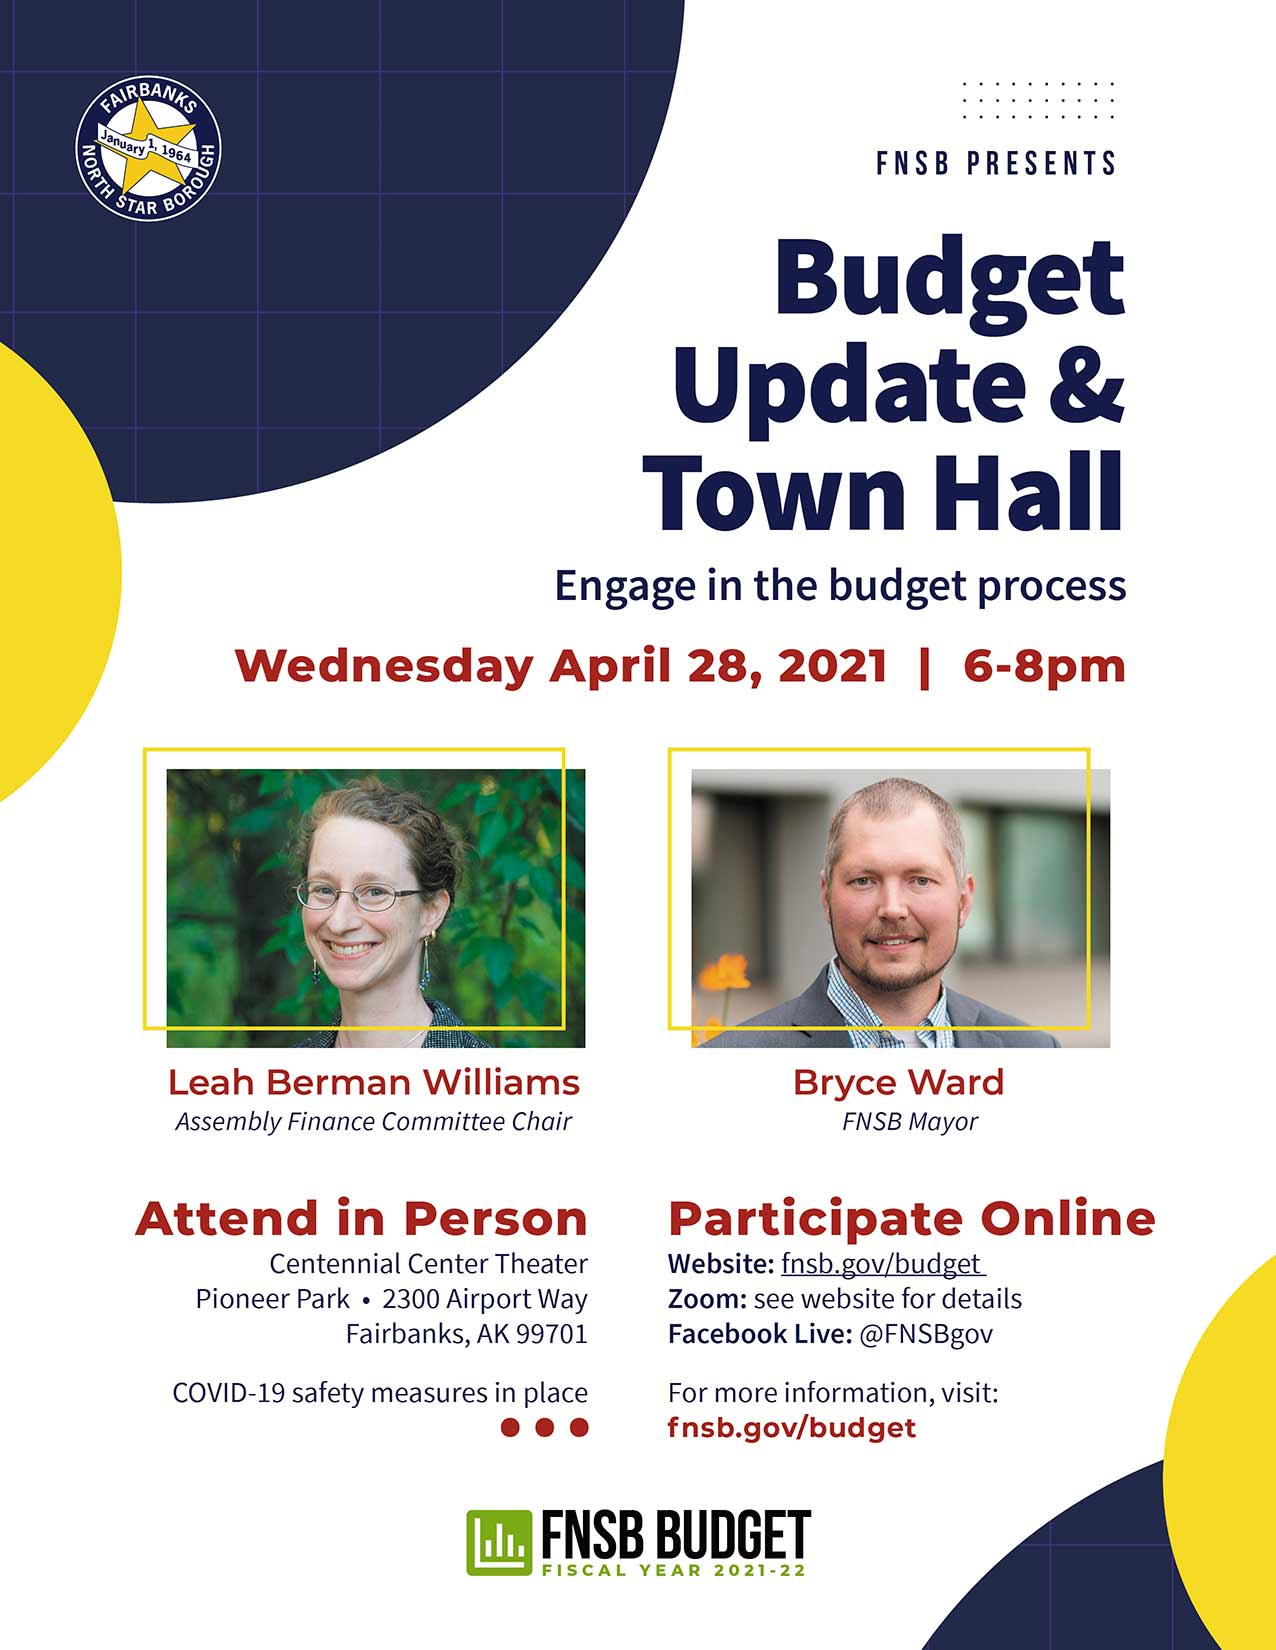 Budget Update & Town Hall Event Poster